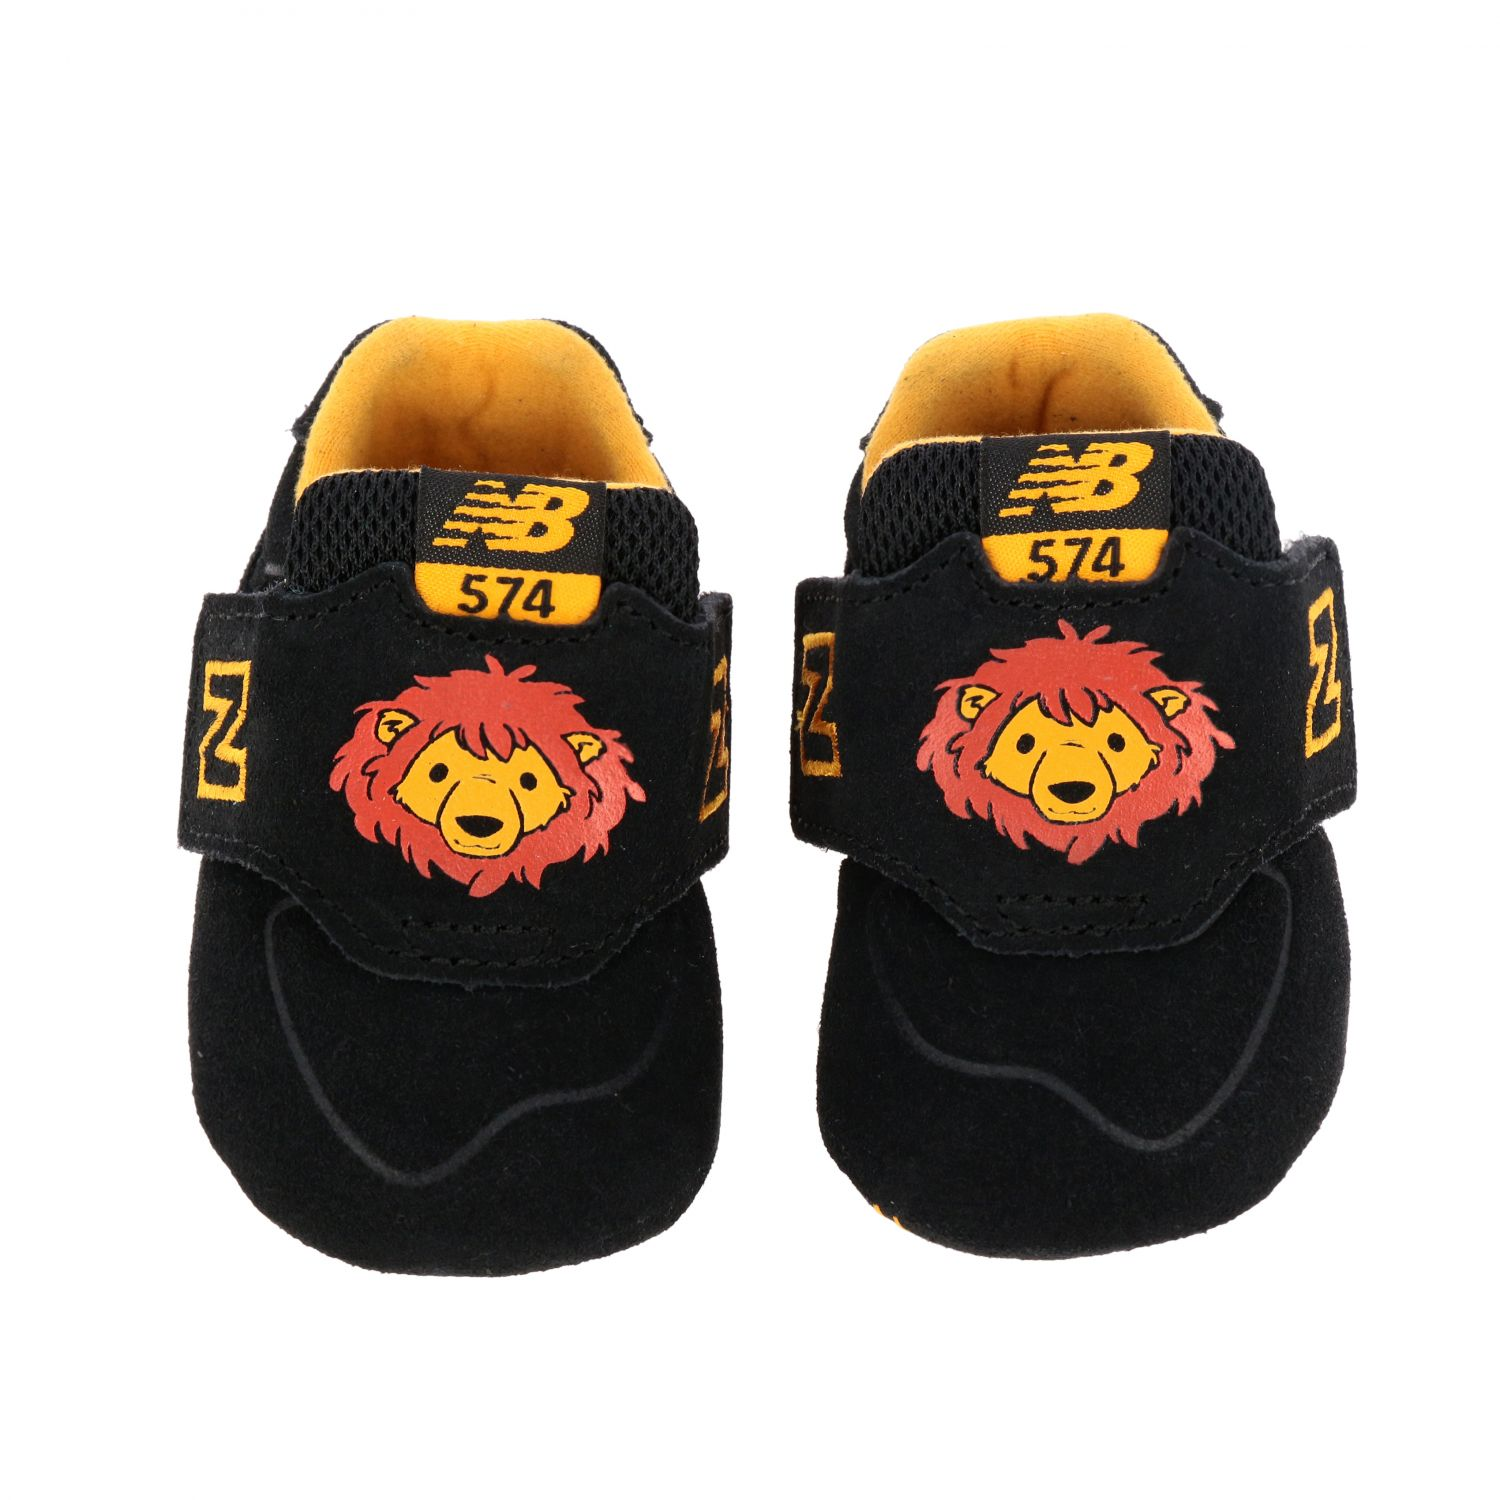 Shoes New Balance: Shoes kids New Balance black 3